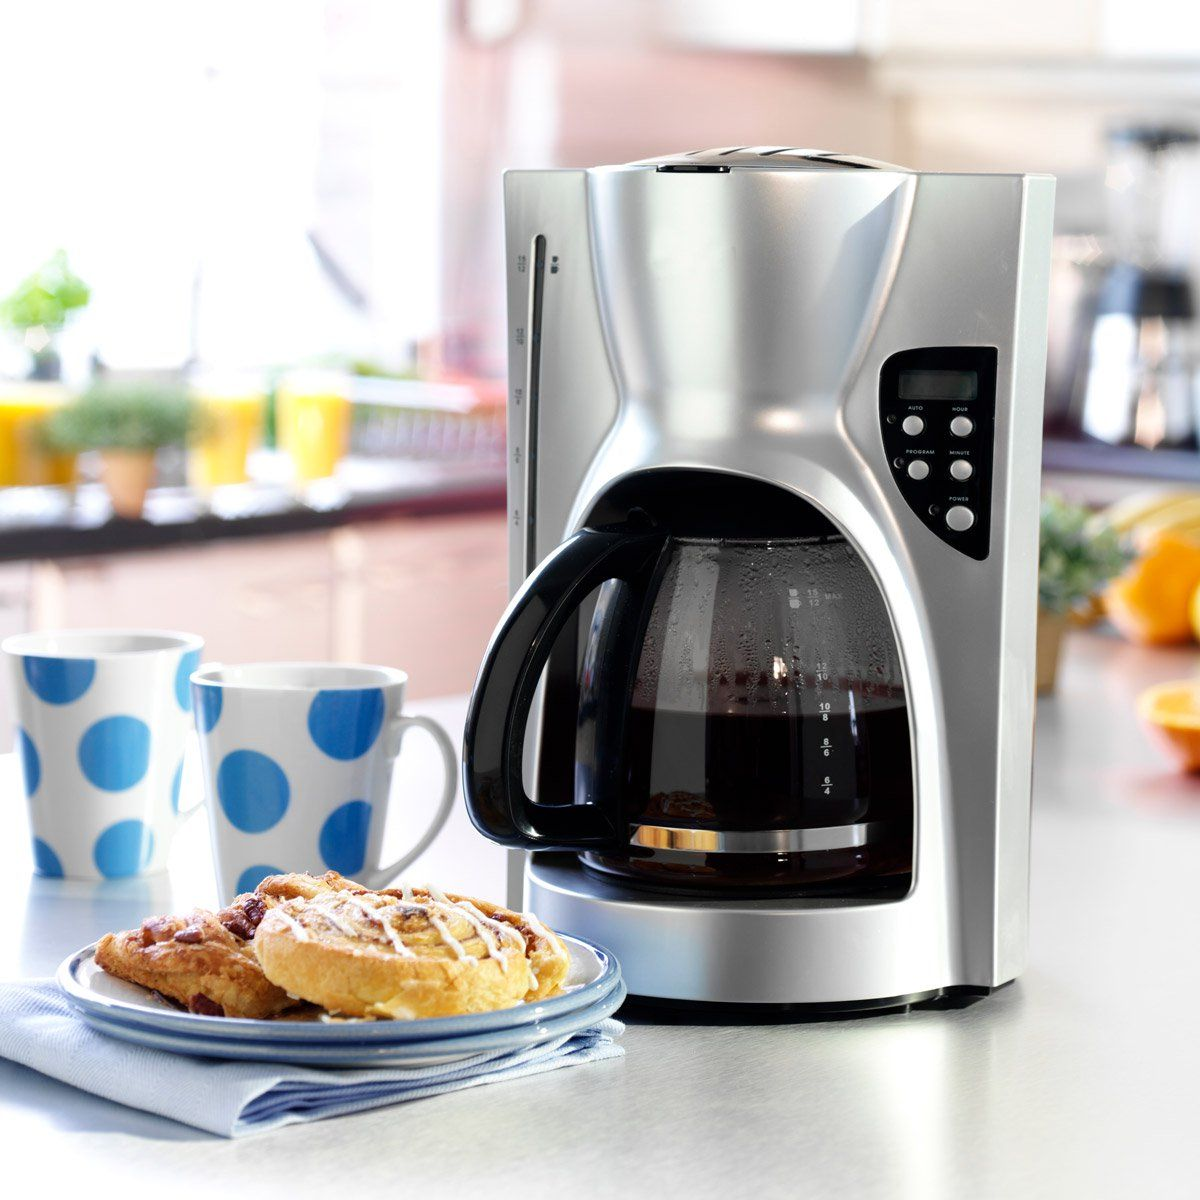 How To Clean A Coffee Maker (With Images)